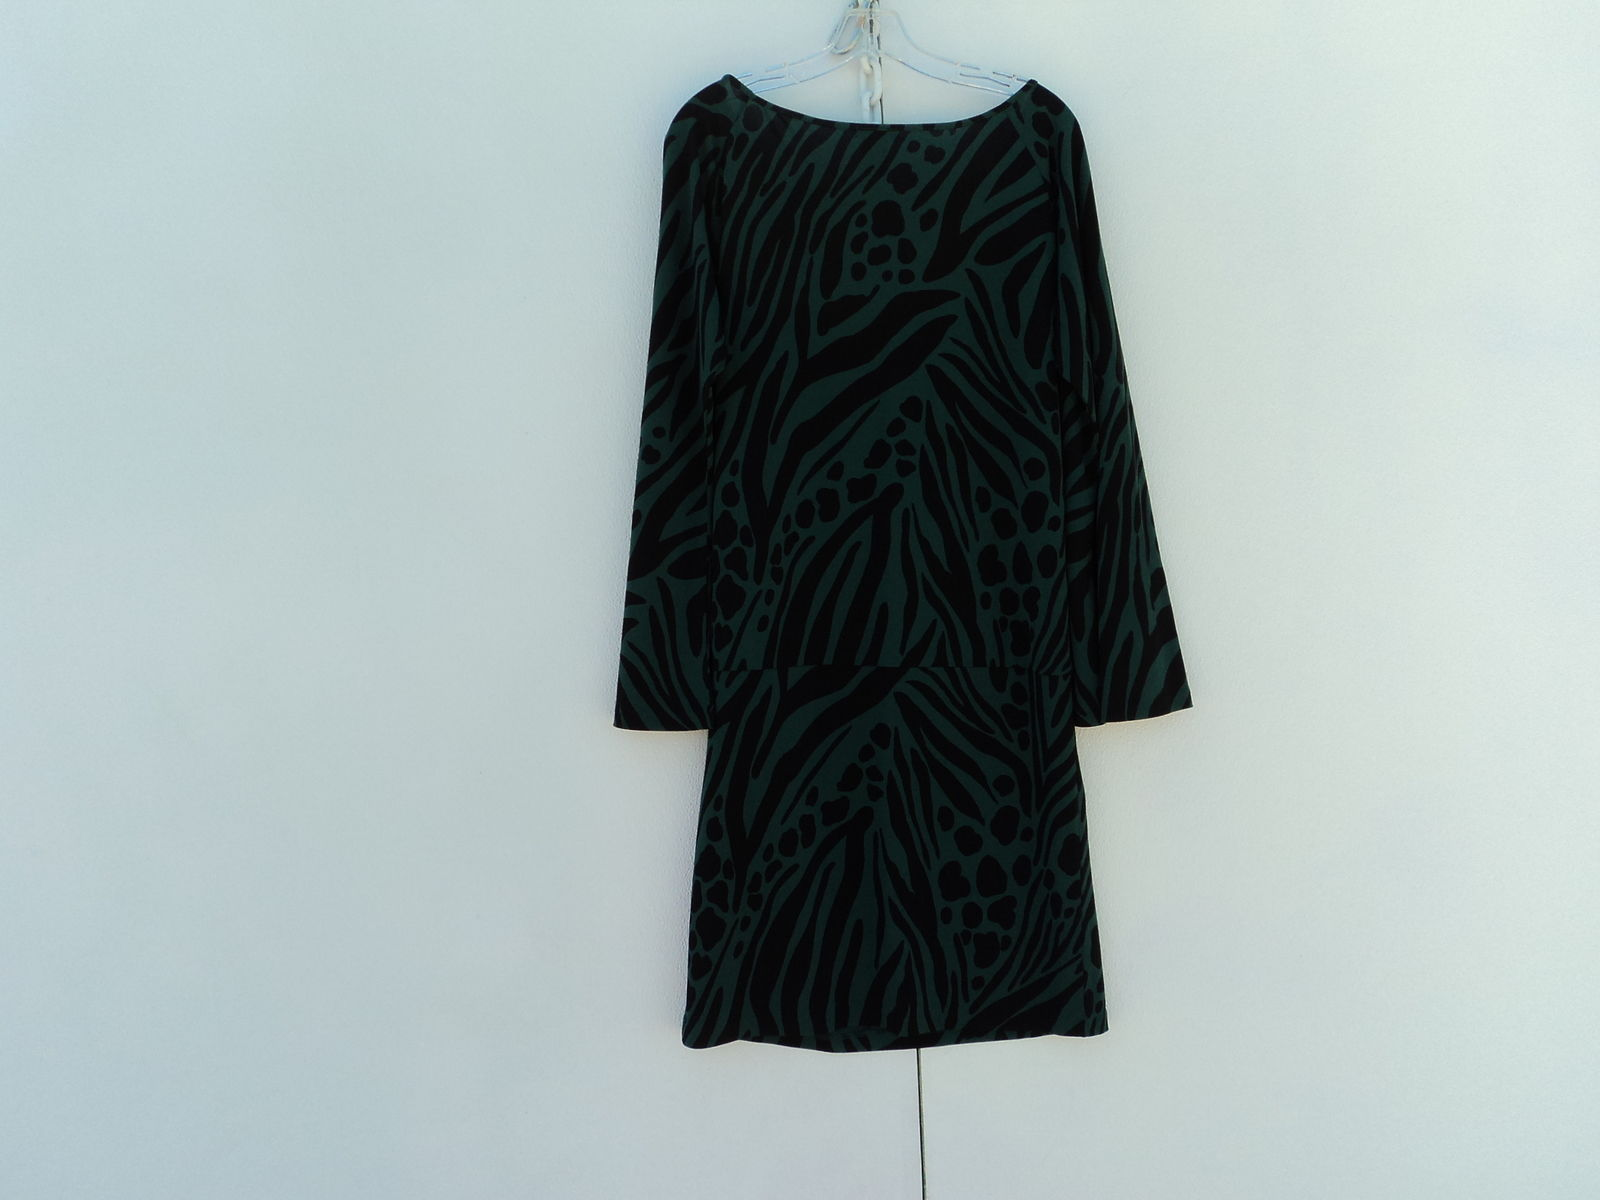 Moda International Blouson Dress Black Green Polyester Spandex Female L